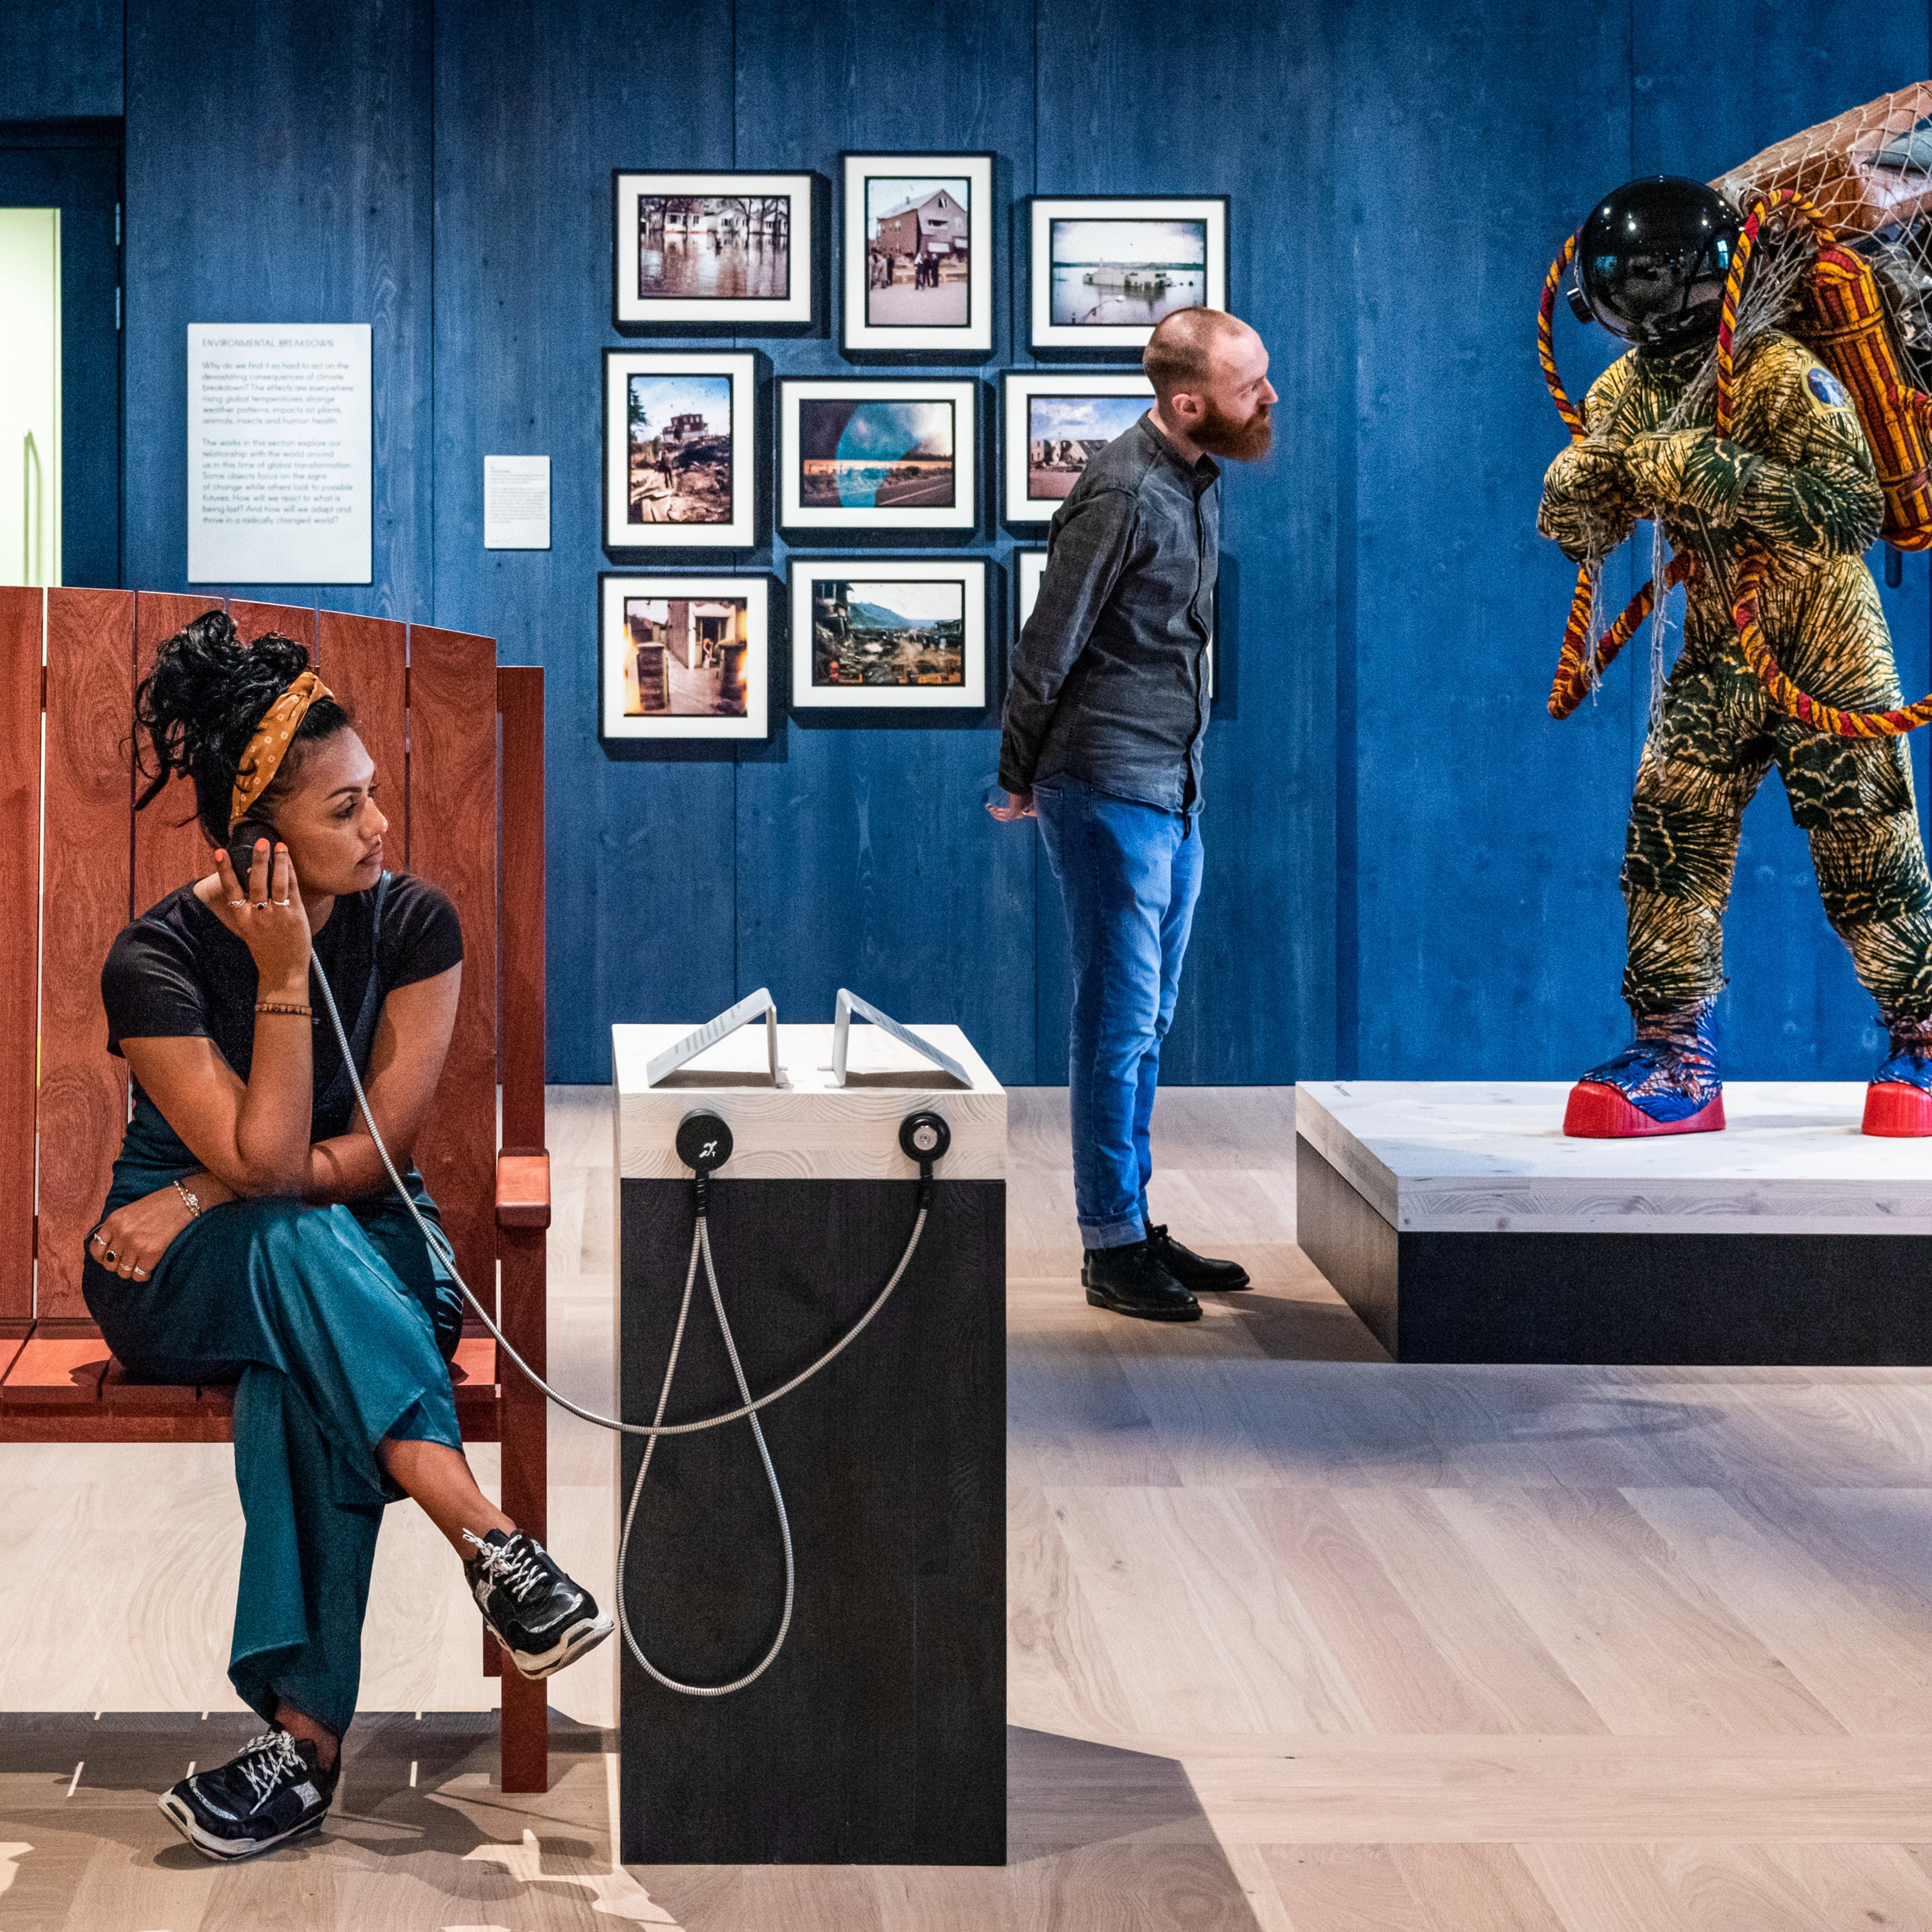 Photograph of an exhibition gallery space, with a blue stained wood wall in the background, in front of which a young man looks at a life-size artwork of a figure resembling an astronaut. In the foreground a young woman sits on a wooden bench holding an audio speaker to her ear.